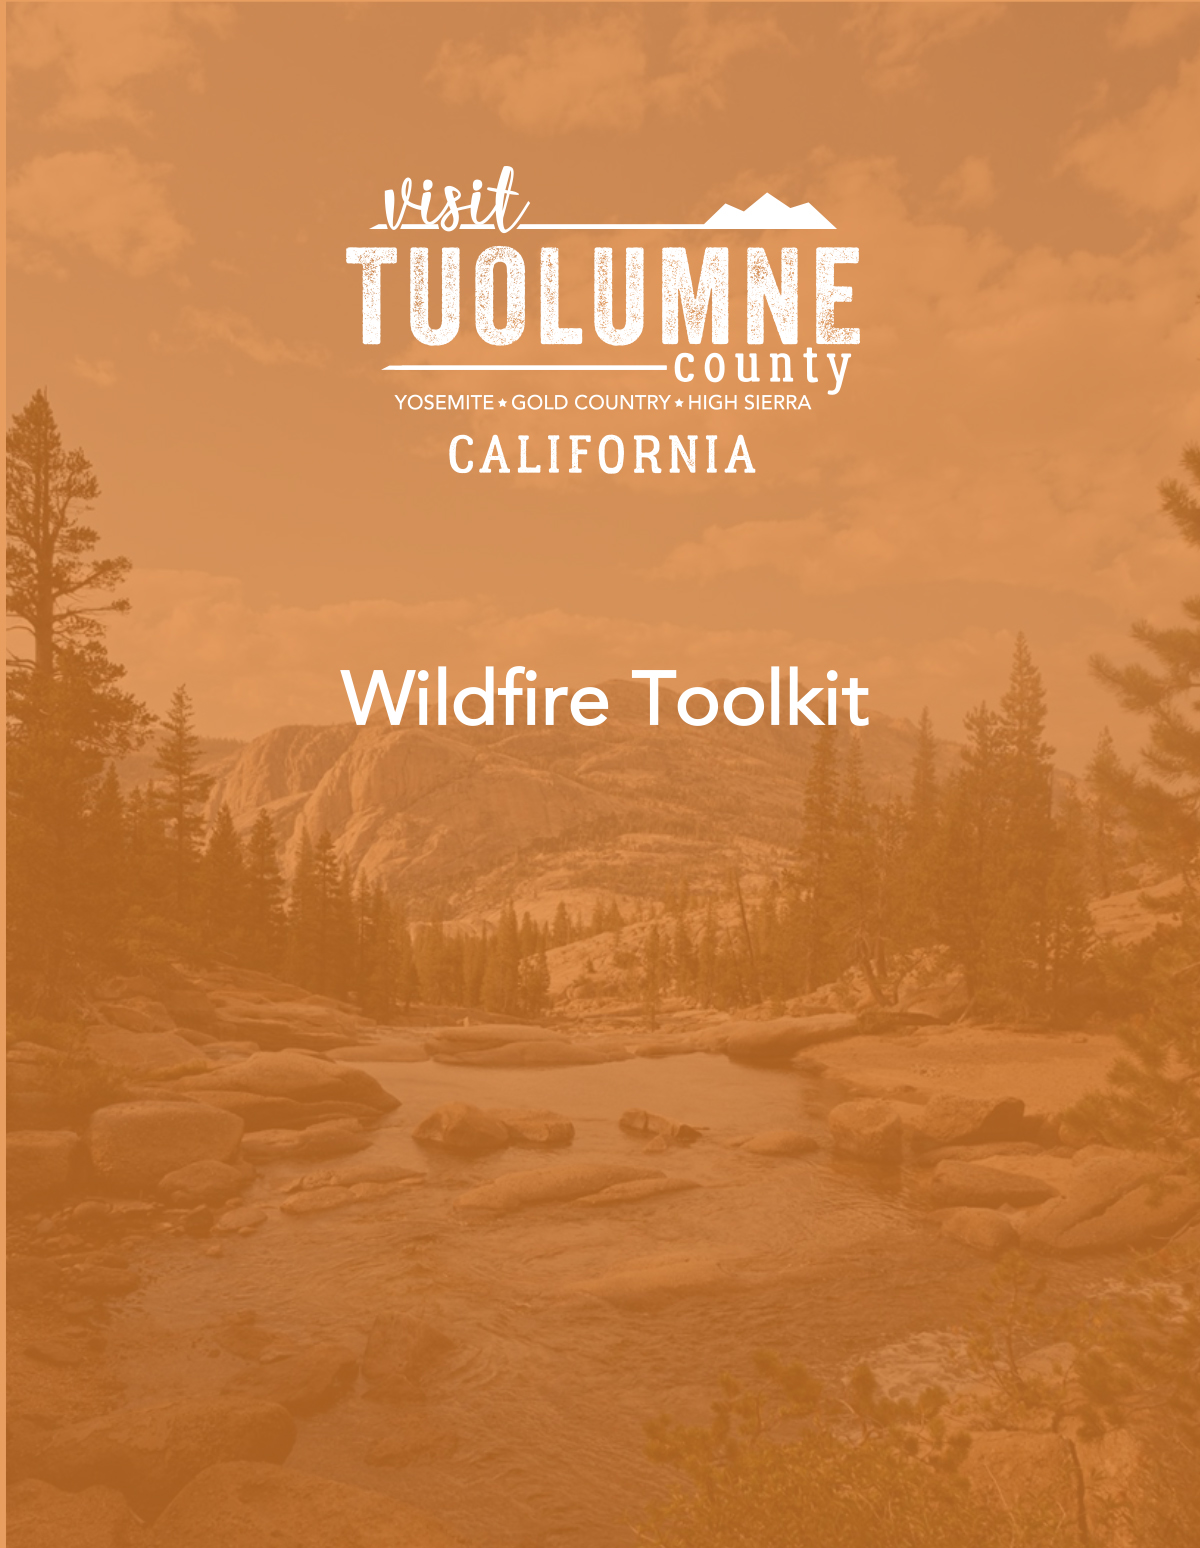 Wildfire Toolkit Cover